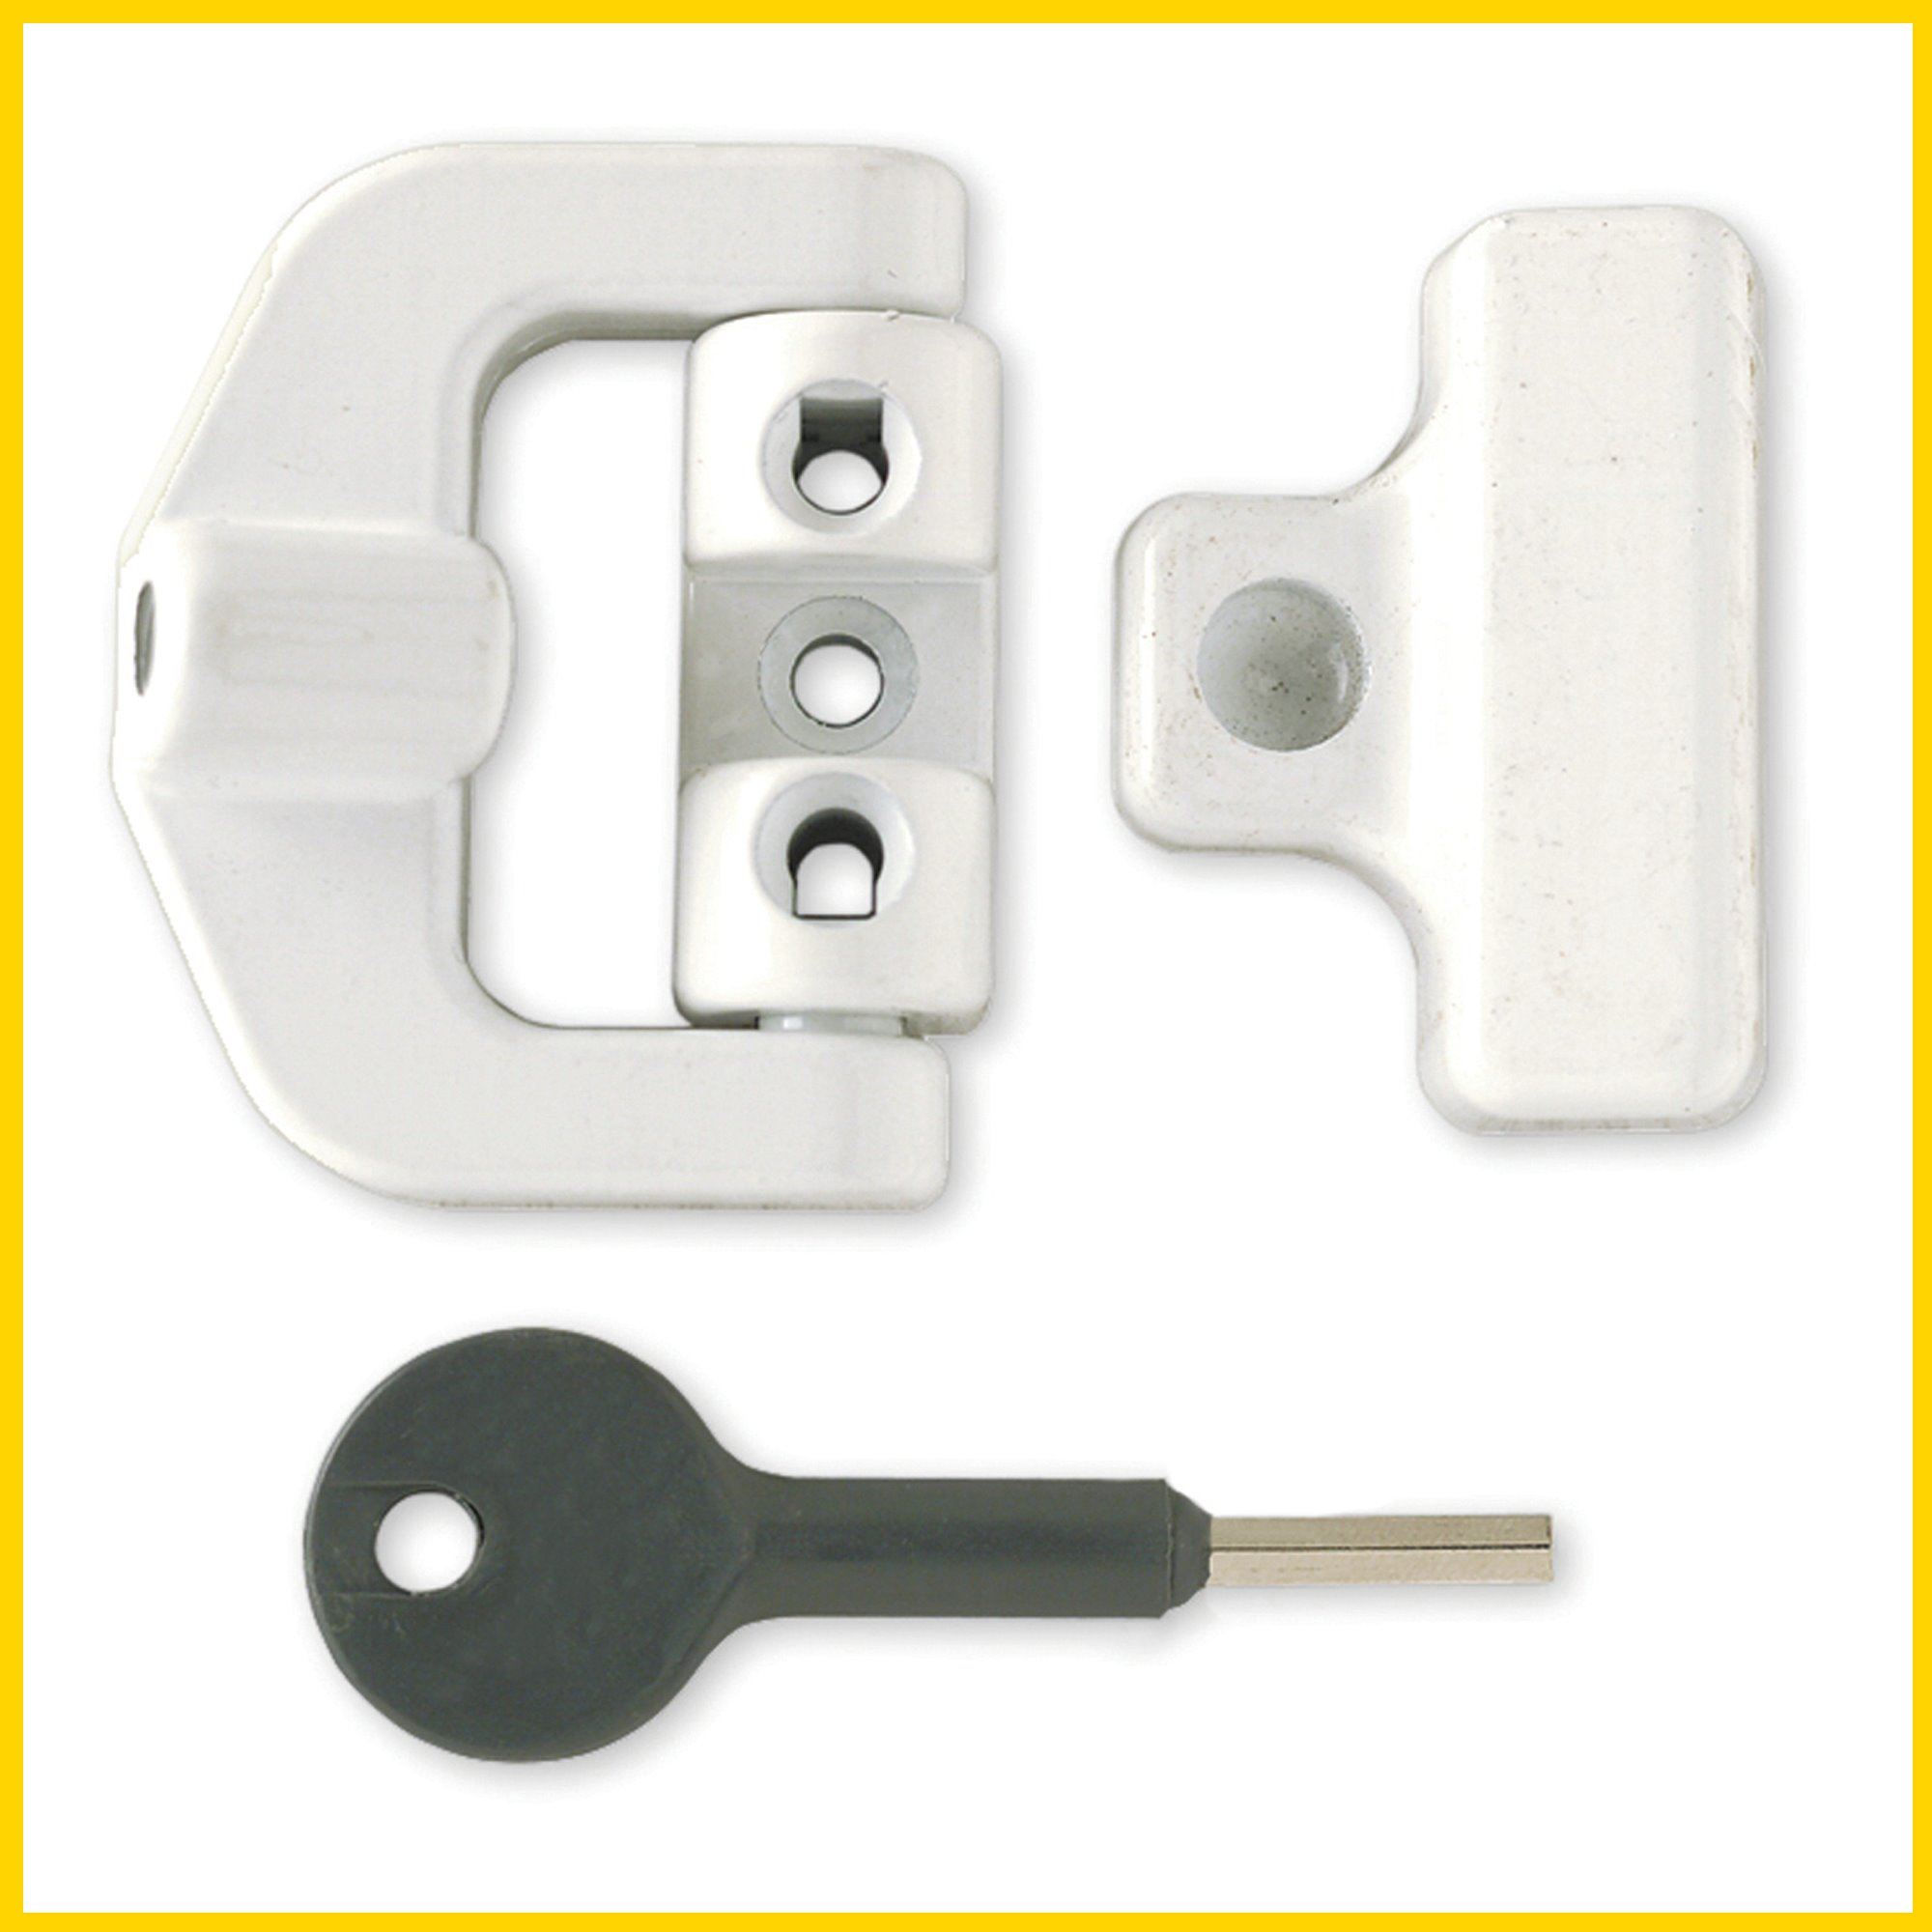 8K123 - PVCu Window Lock